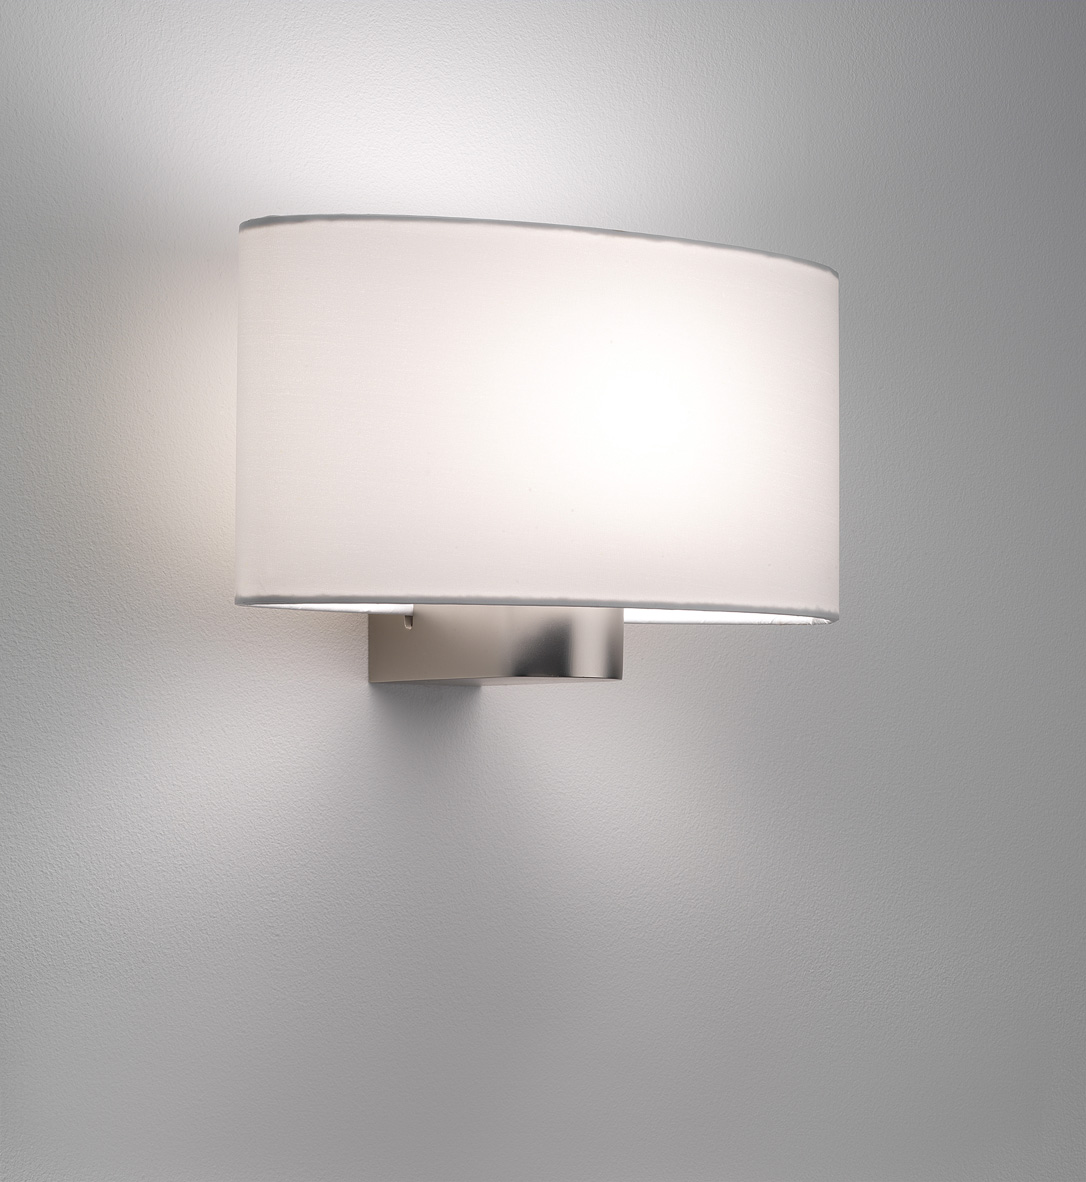 Astro oval fabric lampshade for table wall light e27es shade ring sentinel astro oval fabric lampshade for table wall light e27es shade ring aloadofball Gallery